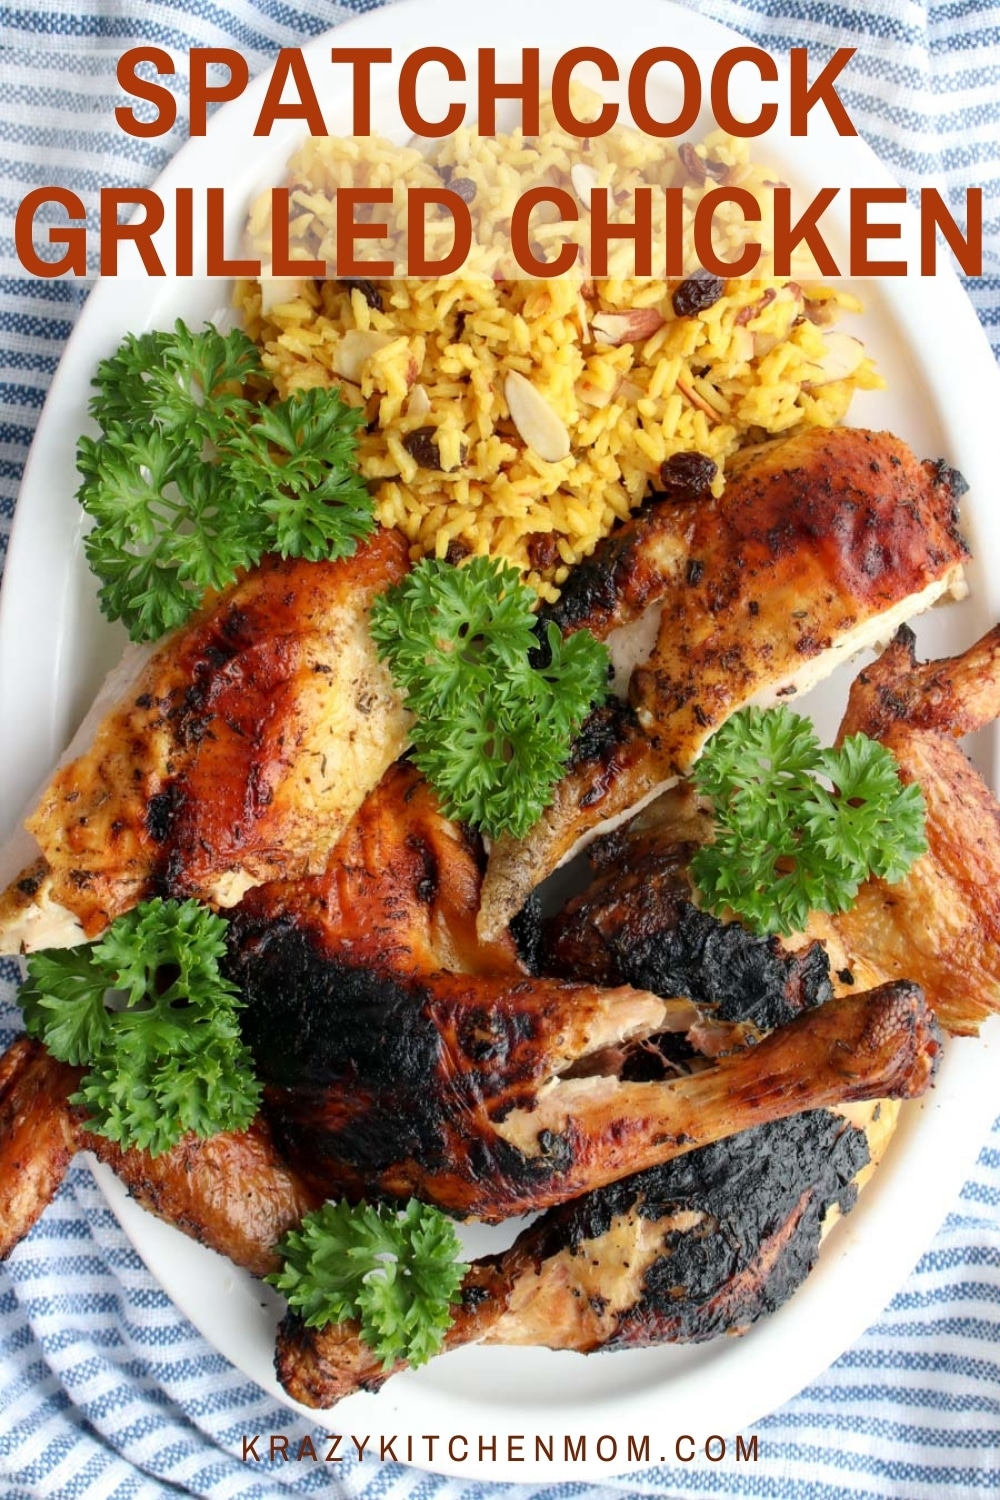 JJuicy, tender, grilled chicken rubbed with herbs and spices and flattened for grilling. Spatchcocking the chicken allows it to cook evenly. via @krazykitchenmom